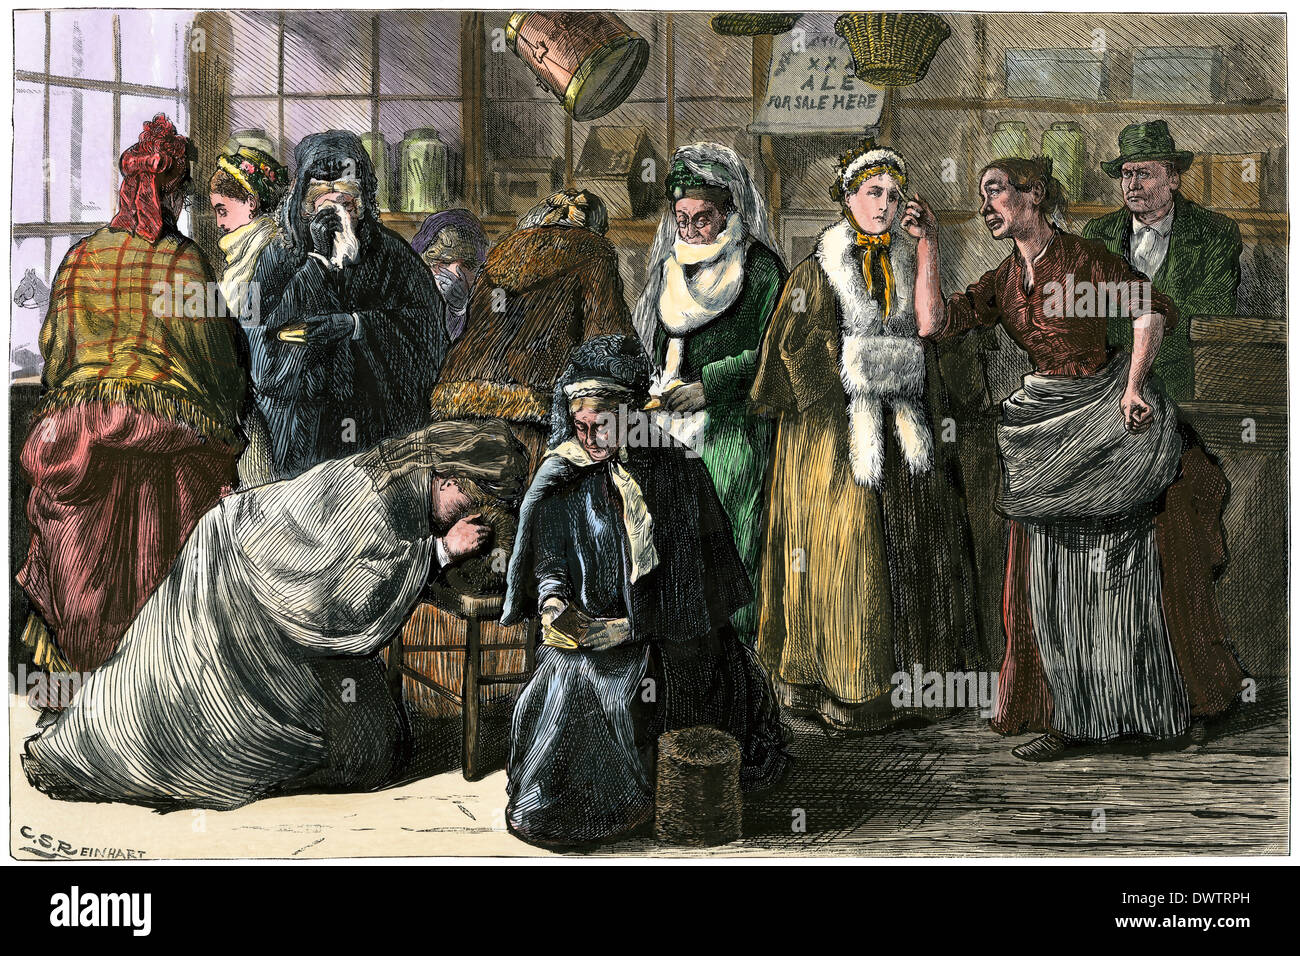 Women temperance crusaders in a saloon, 1870s. Hand-colored woodcut - Stock Image